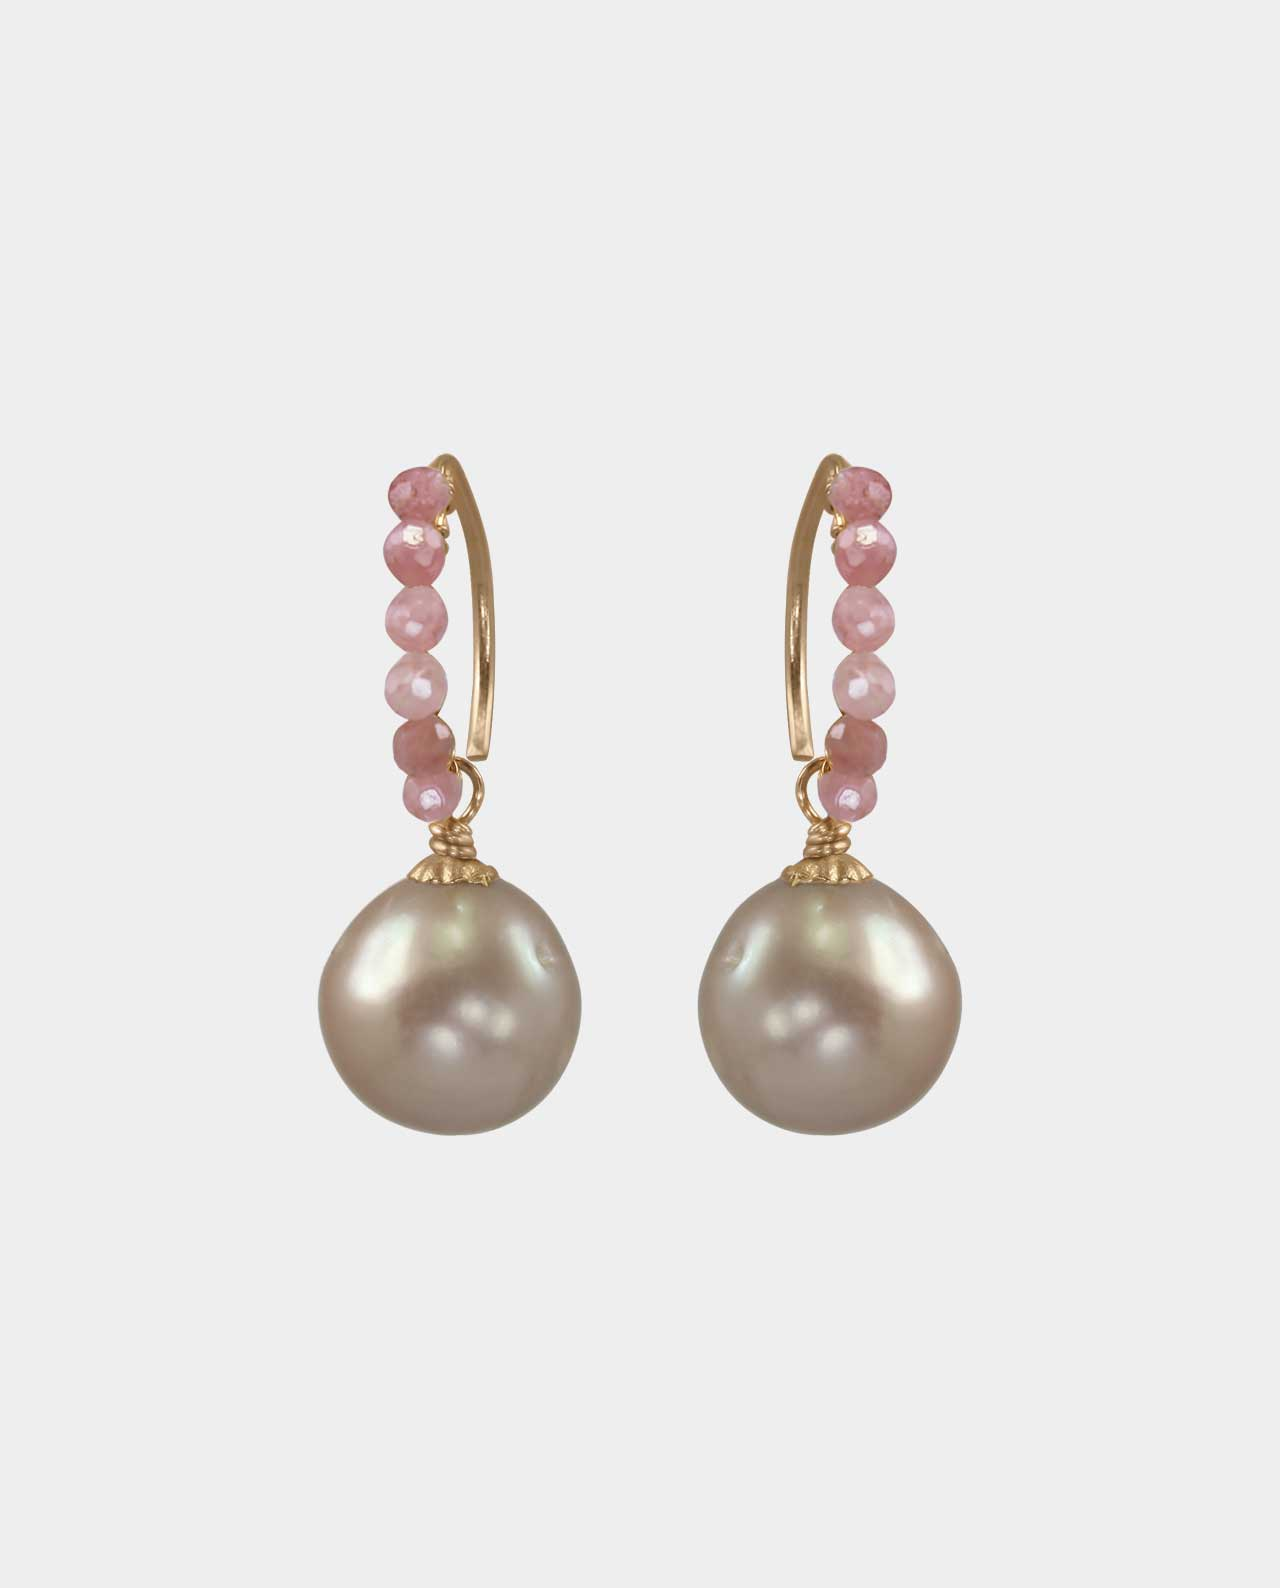 Sensational earrings with pink opals and pink round pearls in a design that is as timeless and understated as it is sophisticated and therefore the perfect gift for your friend